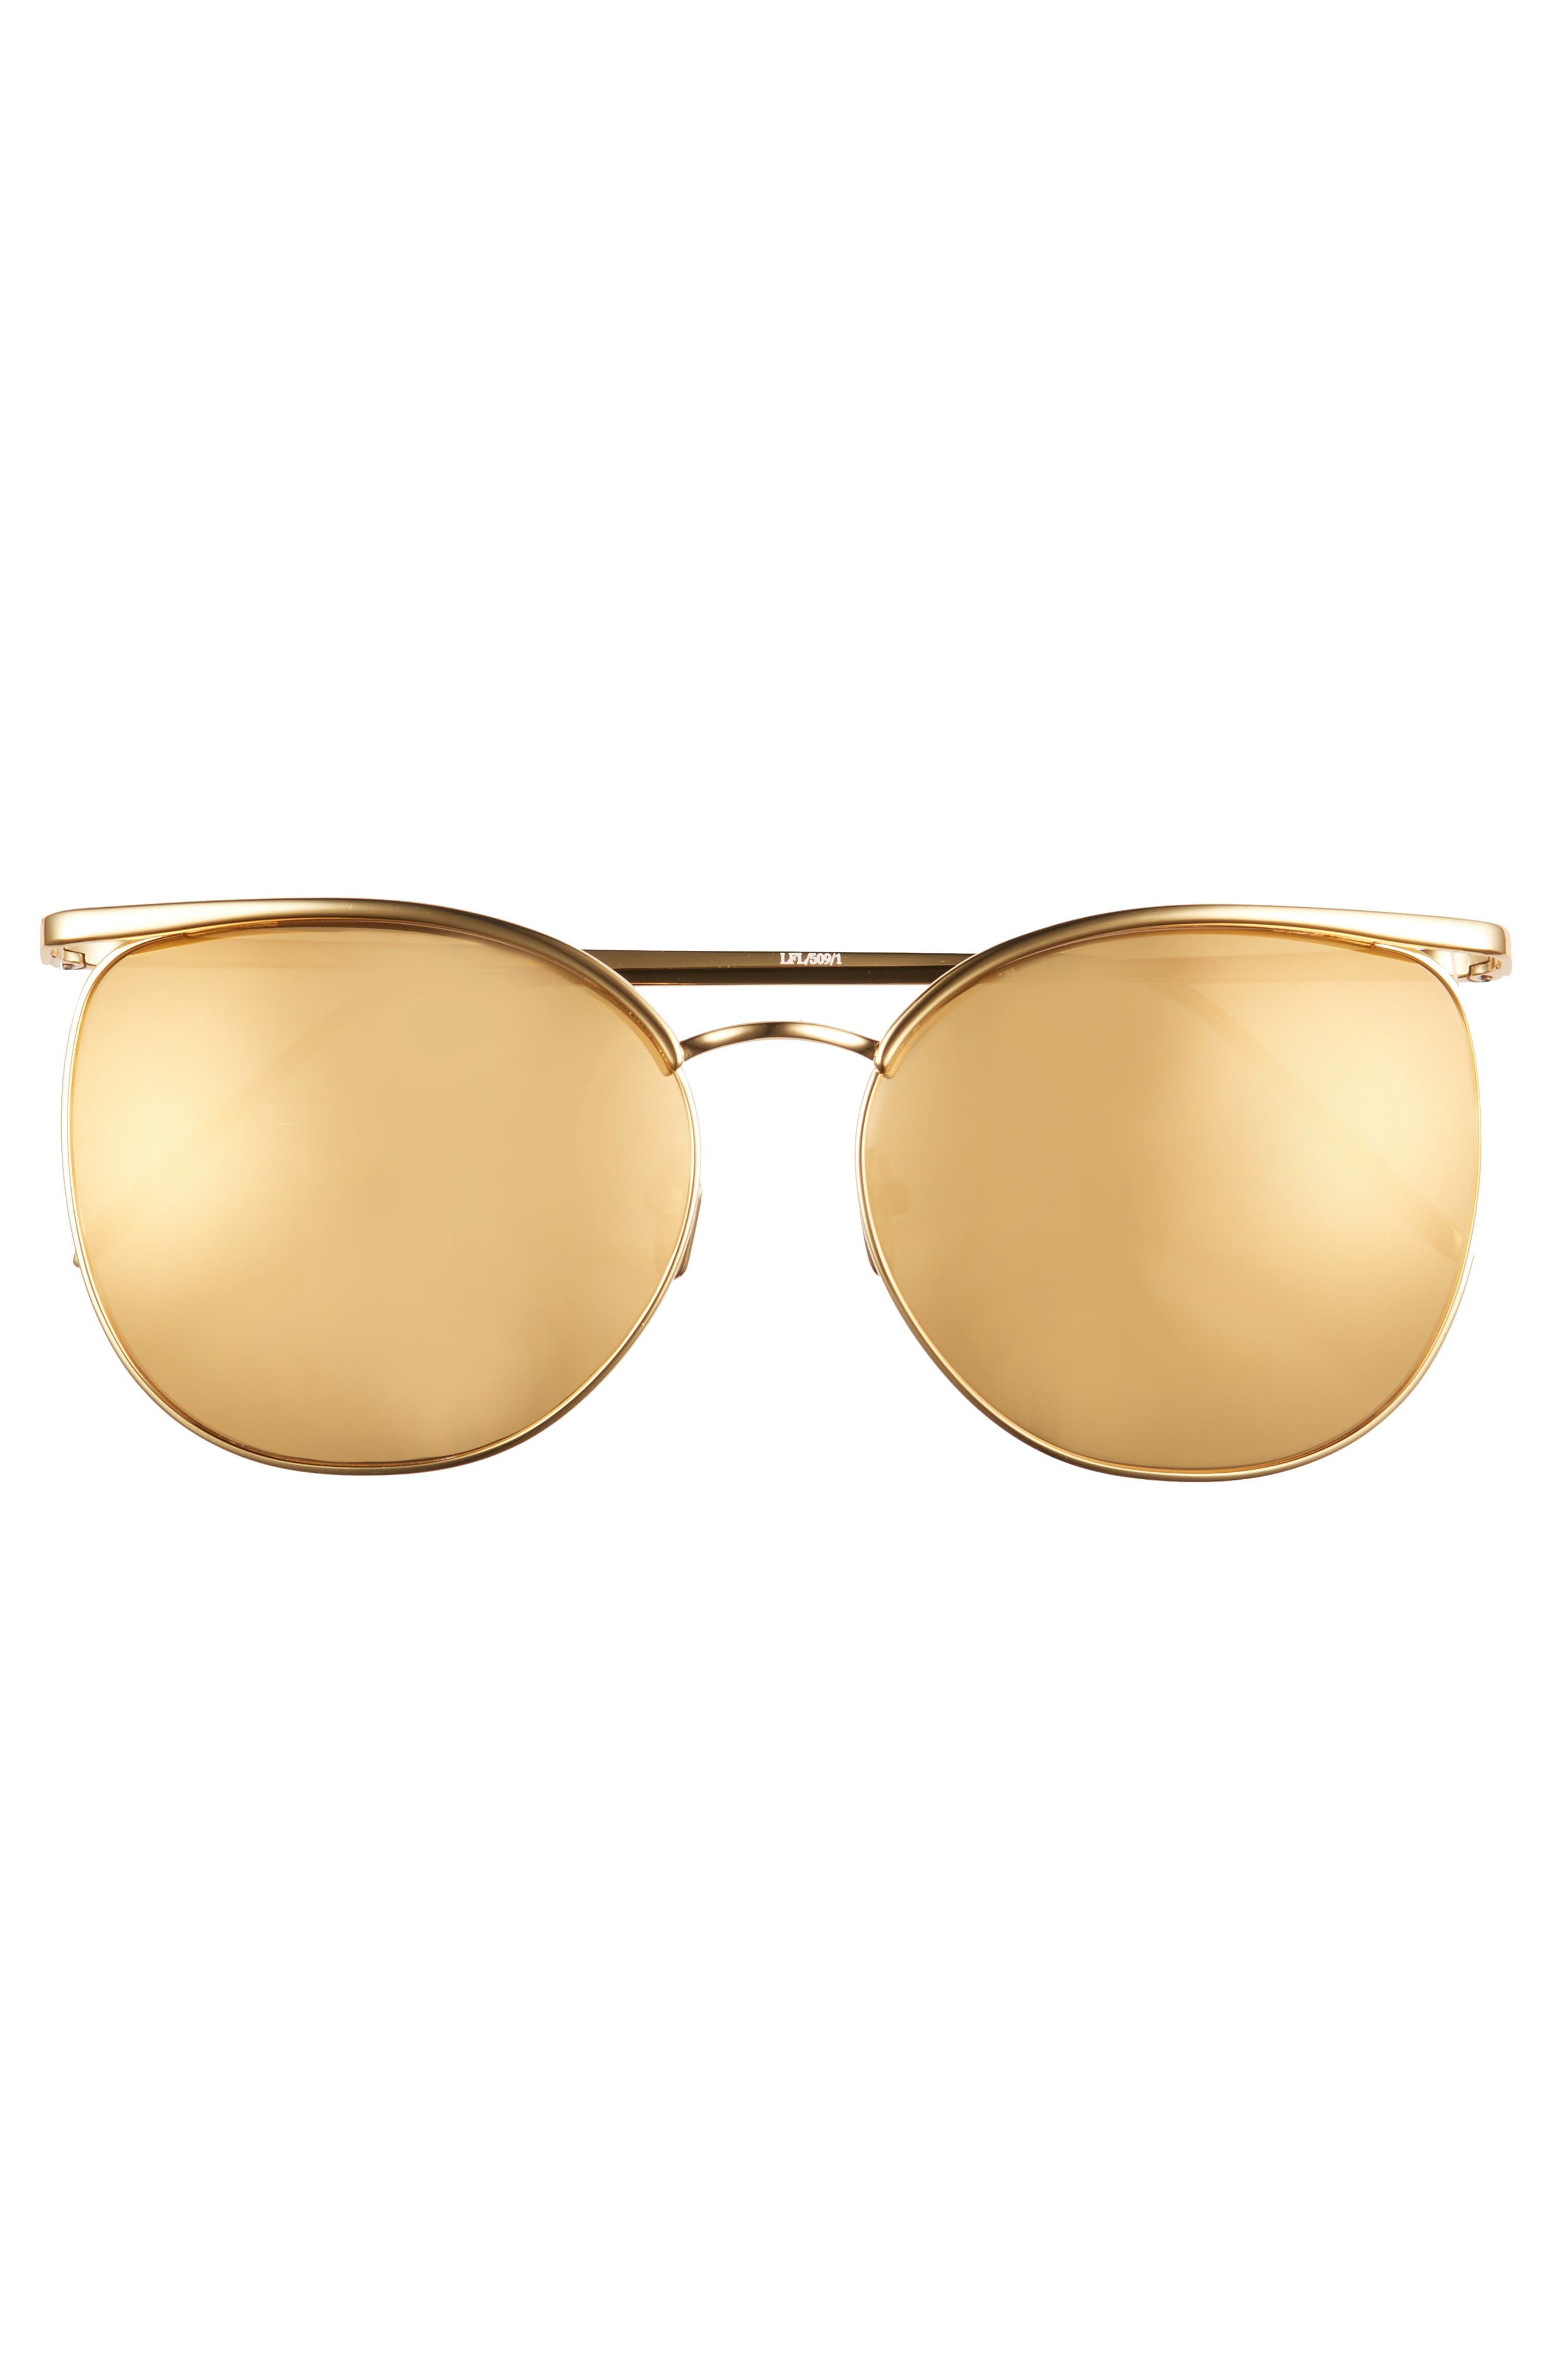 59mm Mirrored 22 Karat Gold Trim Sunglasses,                             Alternate thumbnail 3, color,                             Yellow Gold/ Gold